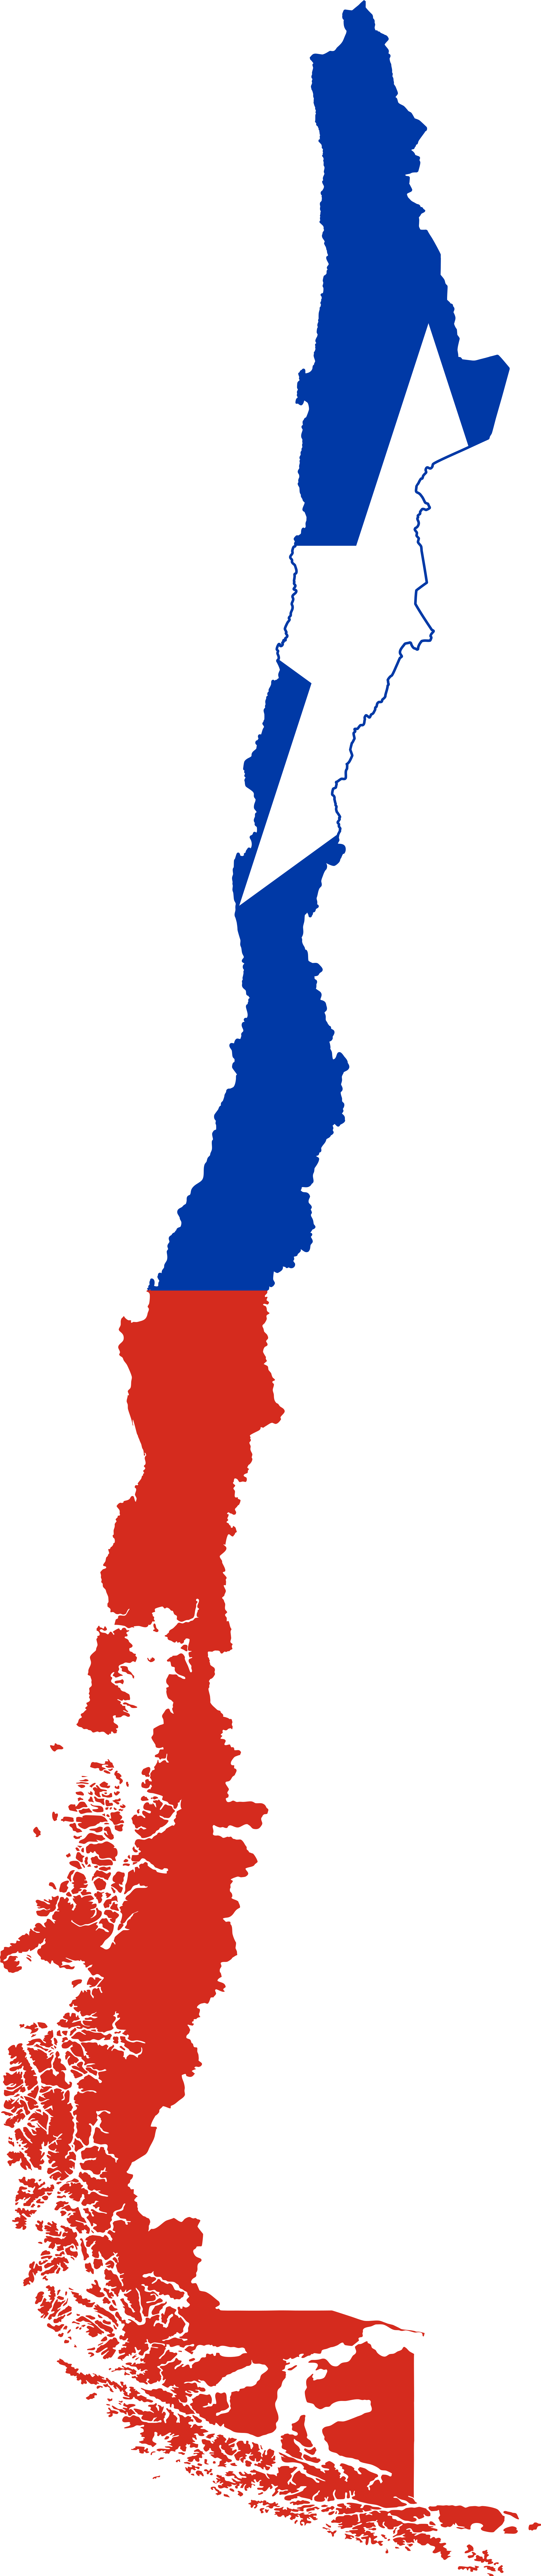 Chile svg #16, Download drawings